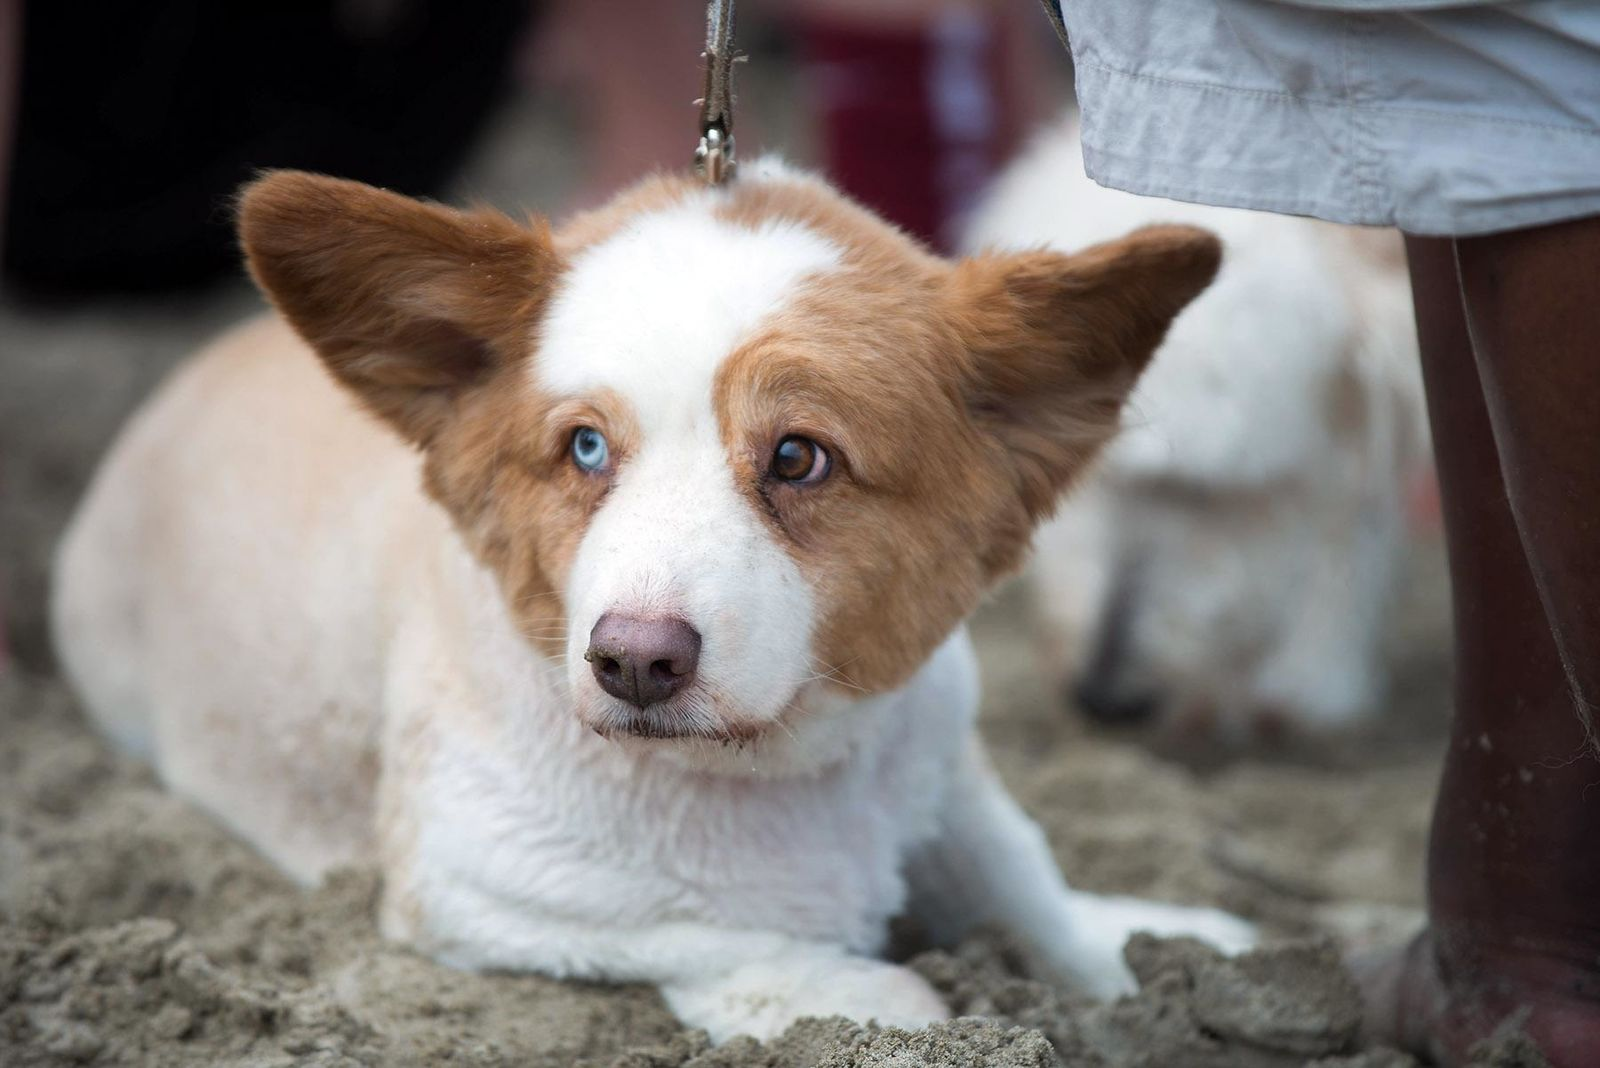 Hundreds of corgis converged on Cannon Beach Saturday for the annual Corgi Beach Day! The massive corgi gathering features costume contests, dog races, and other fun - all benefiting the Oregon Humane Society! (Photo by Tristan Fortsch on July 27, 2019)